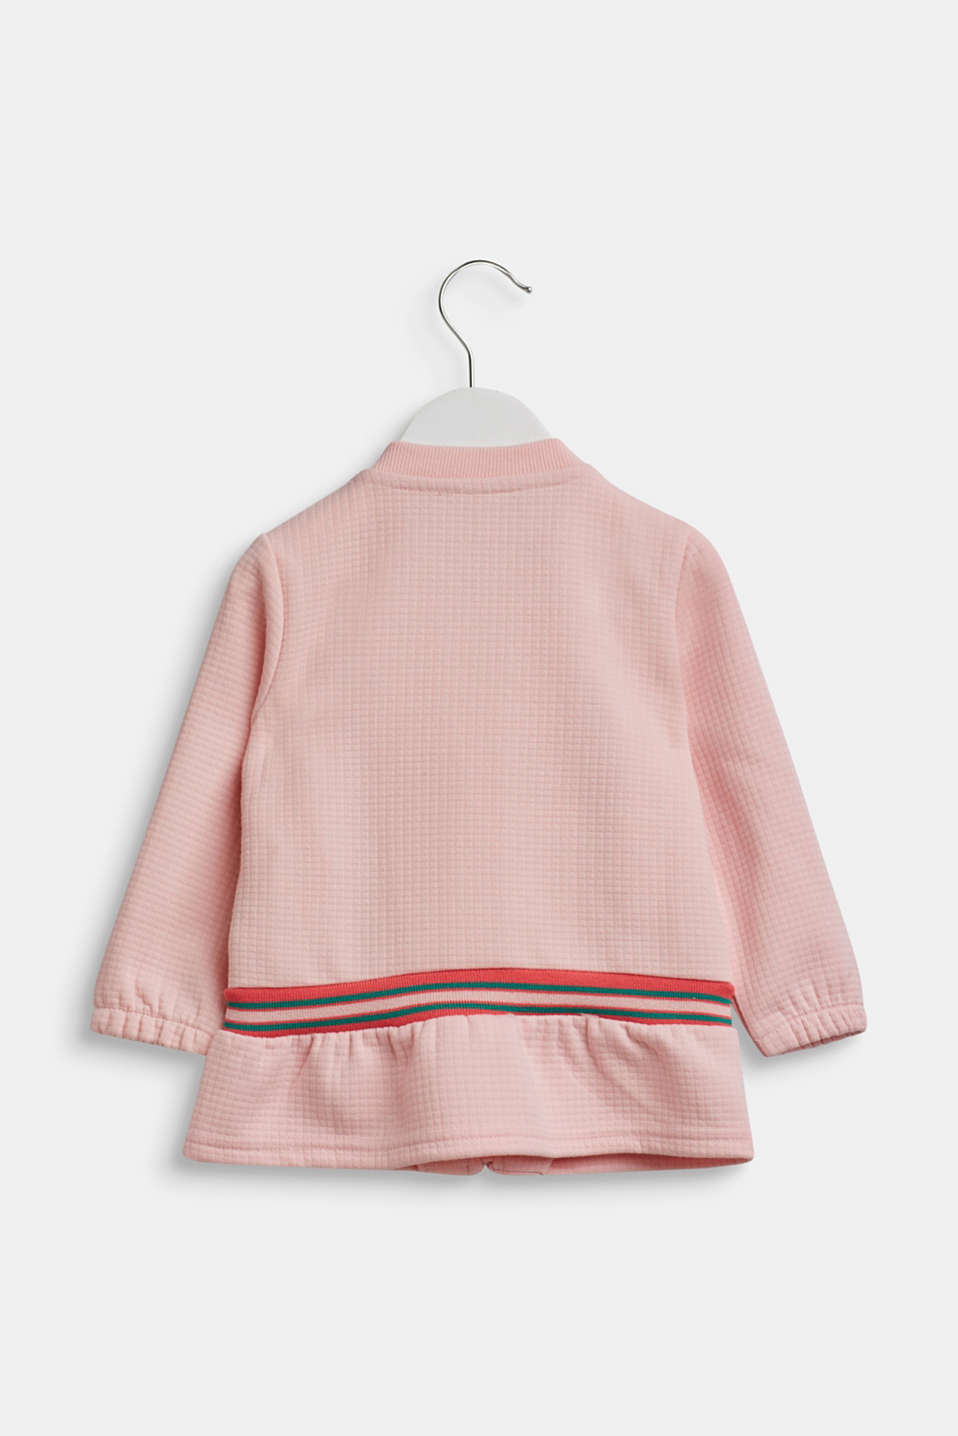 Sweatshirt cardigan with contrasting stripes, LCTINTED ROSE, detail image number 1